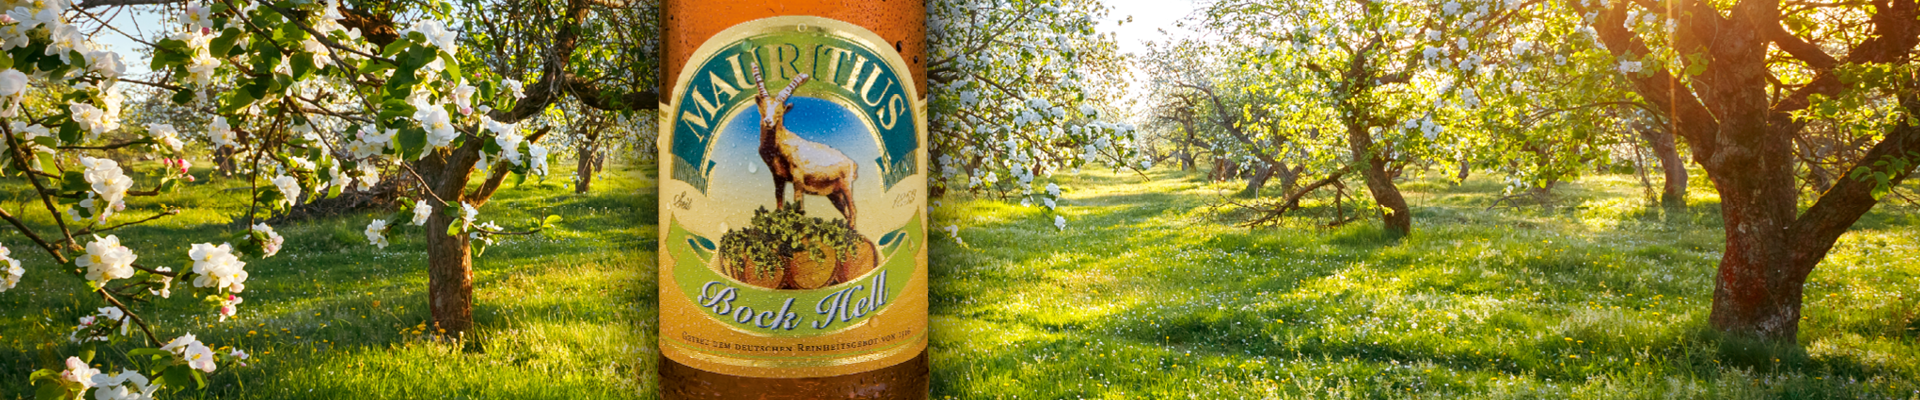 Mauritius: Biere: Bock Hell